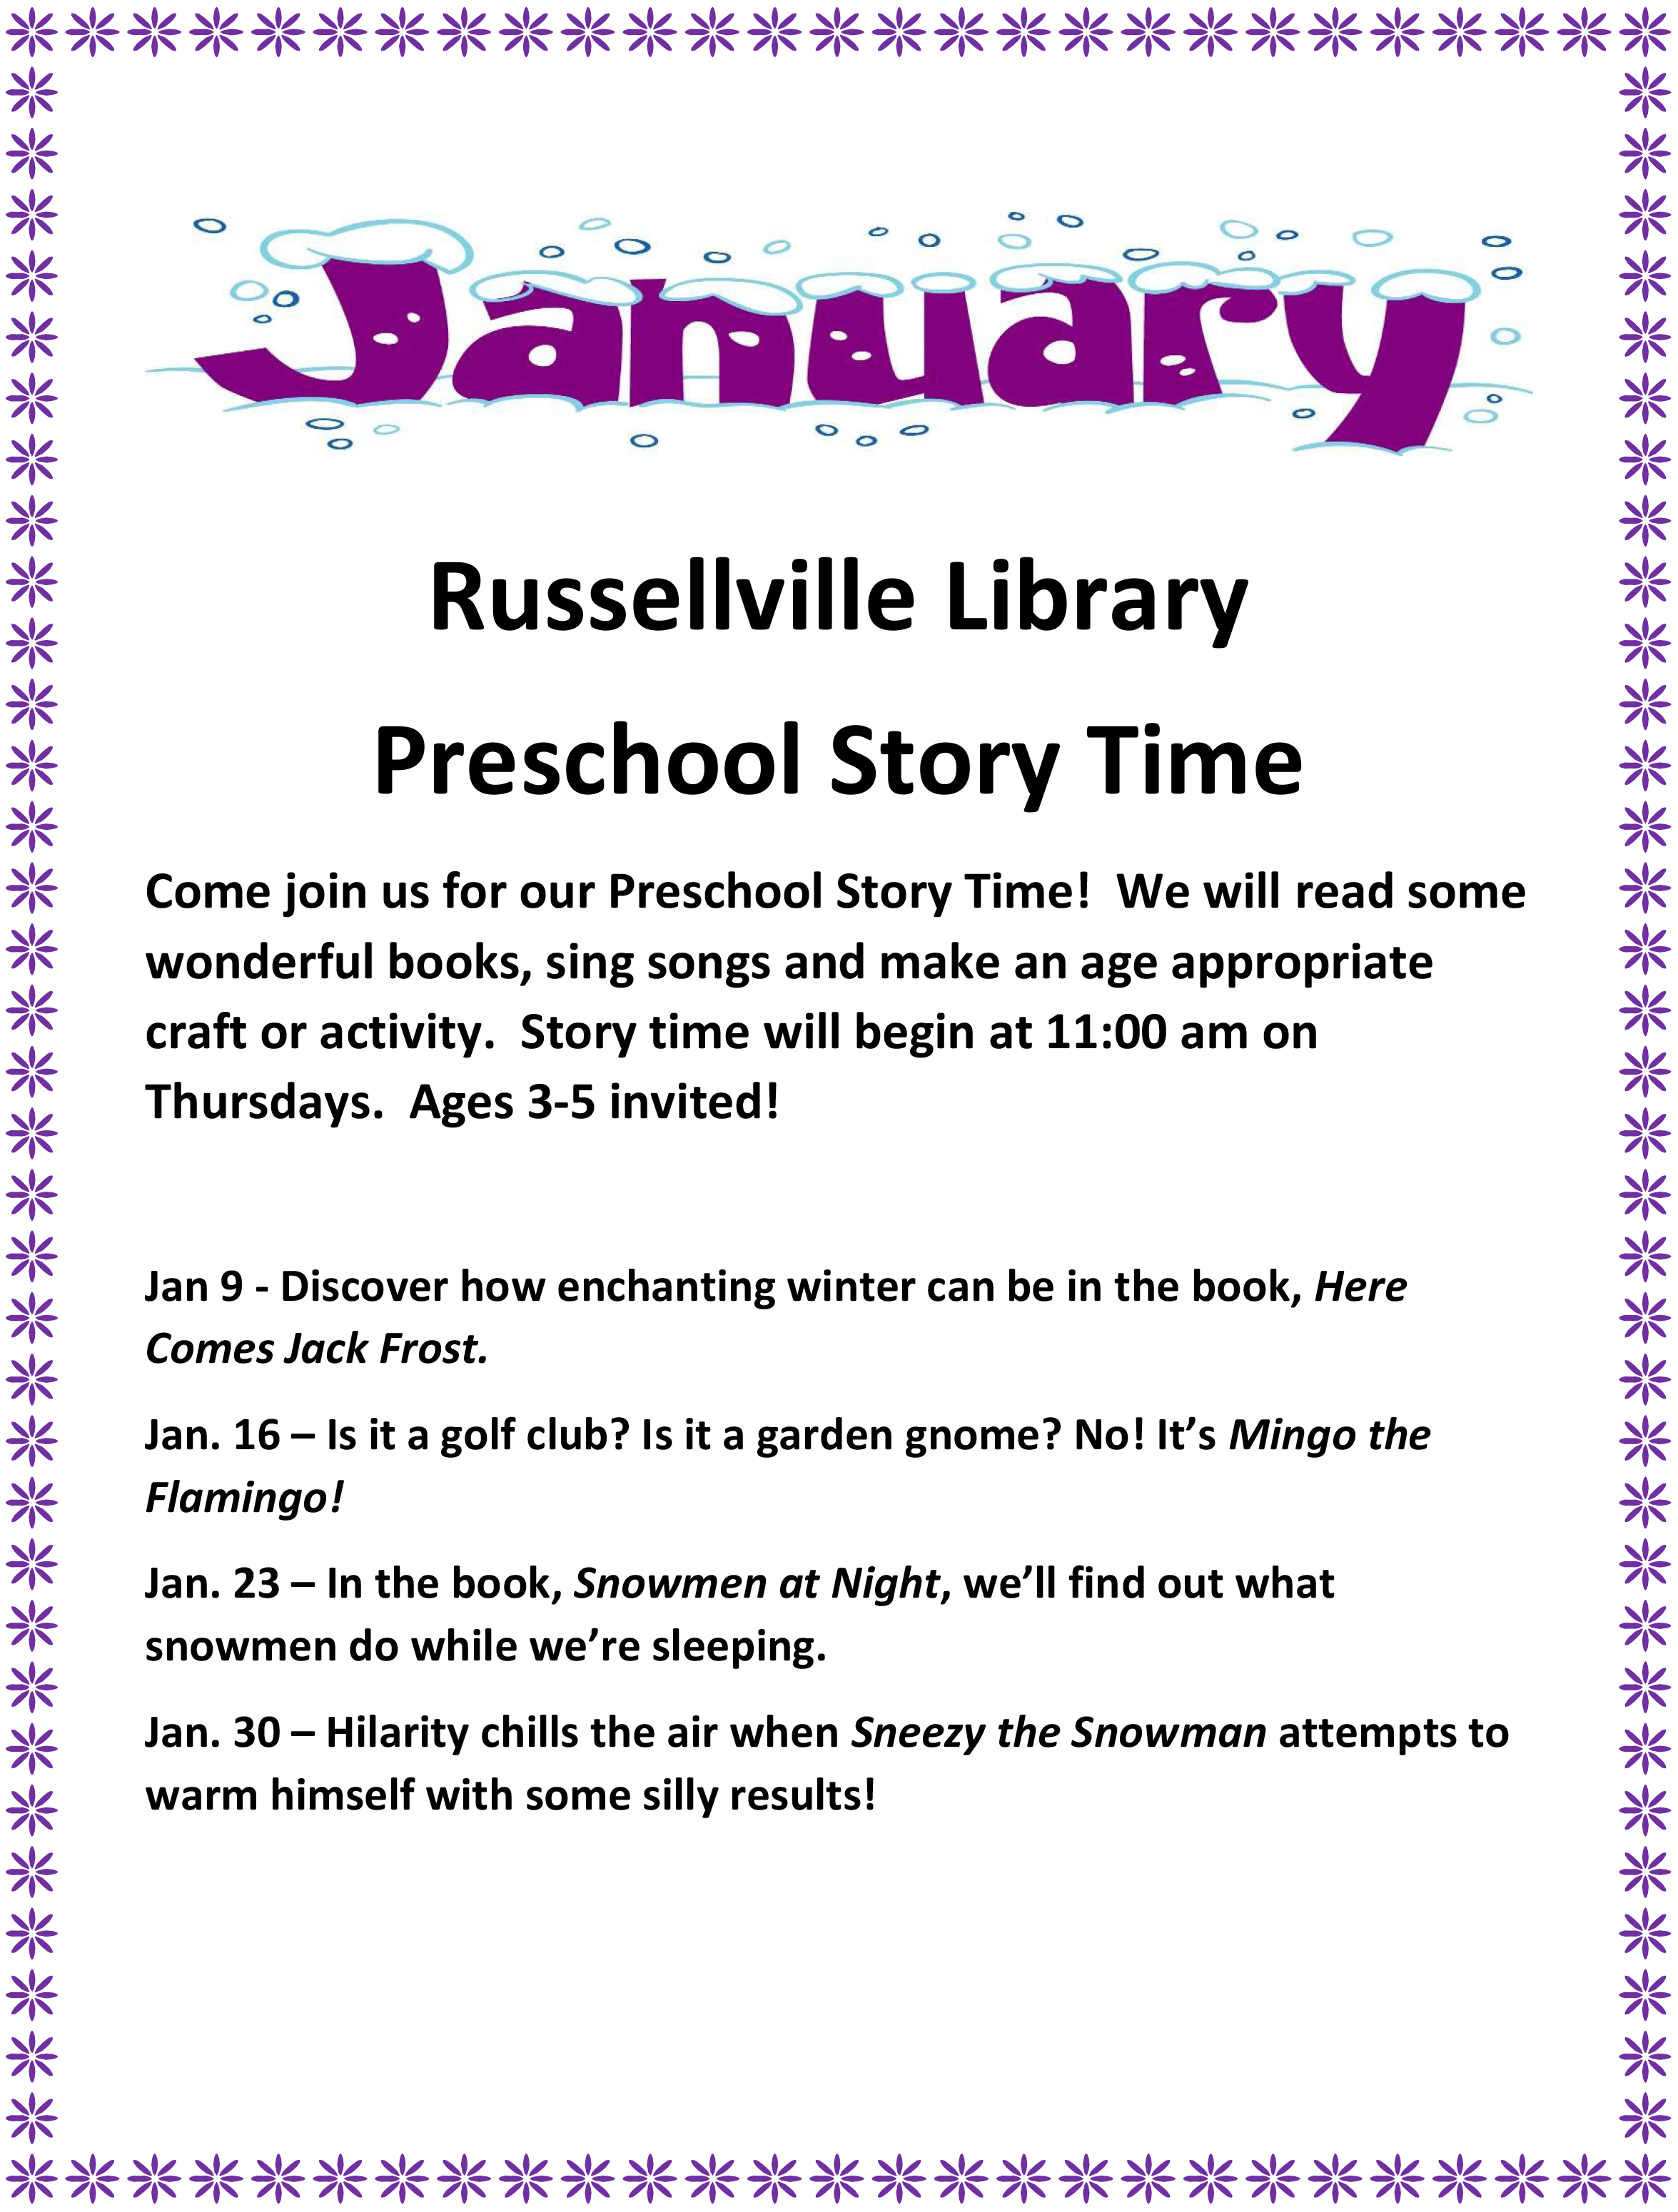 January Preschool Story Times - Russellville